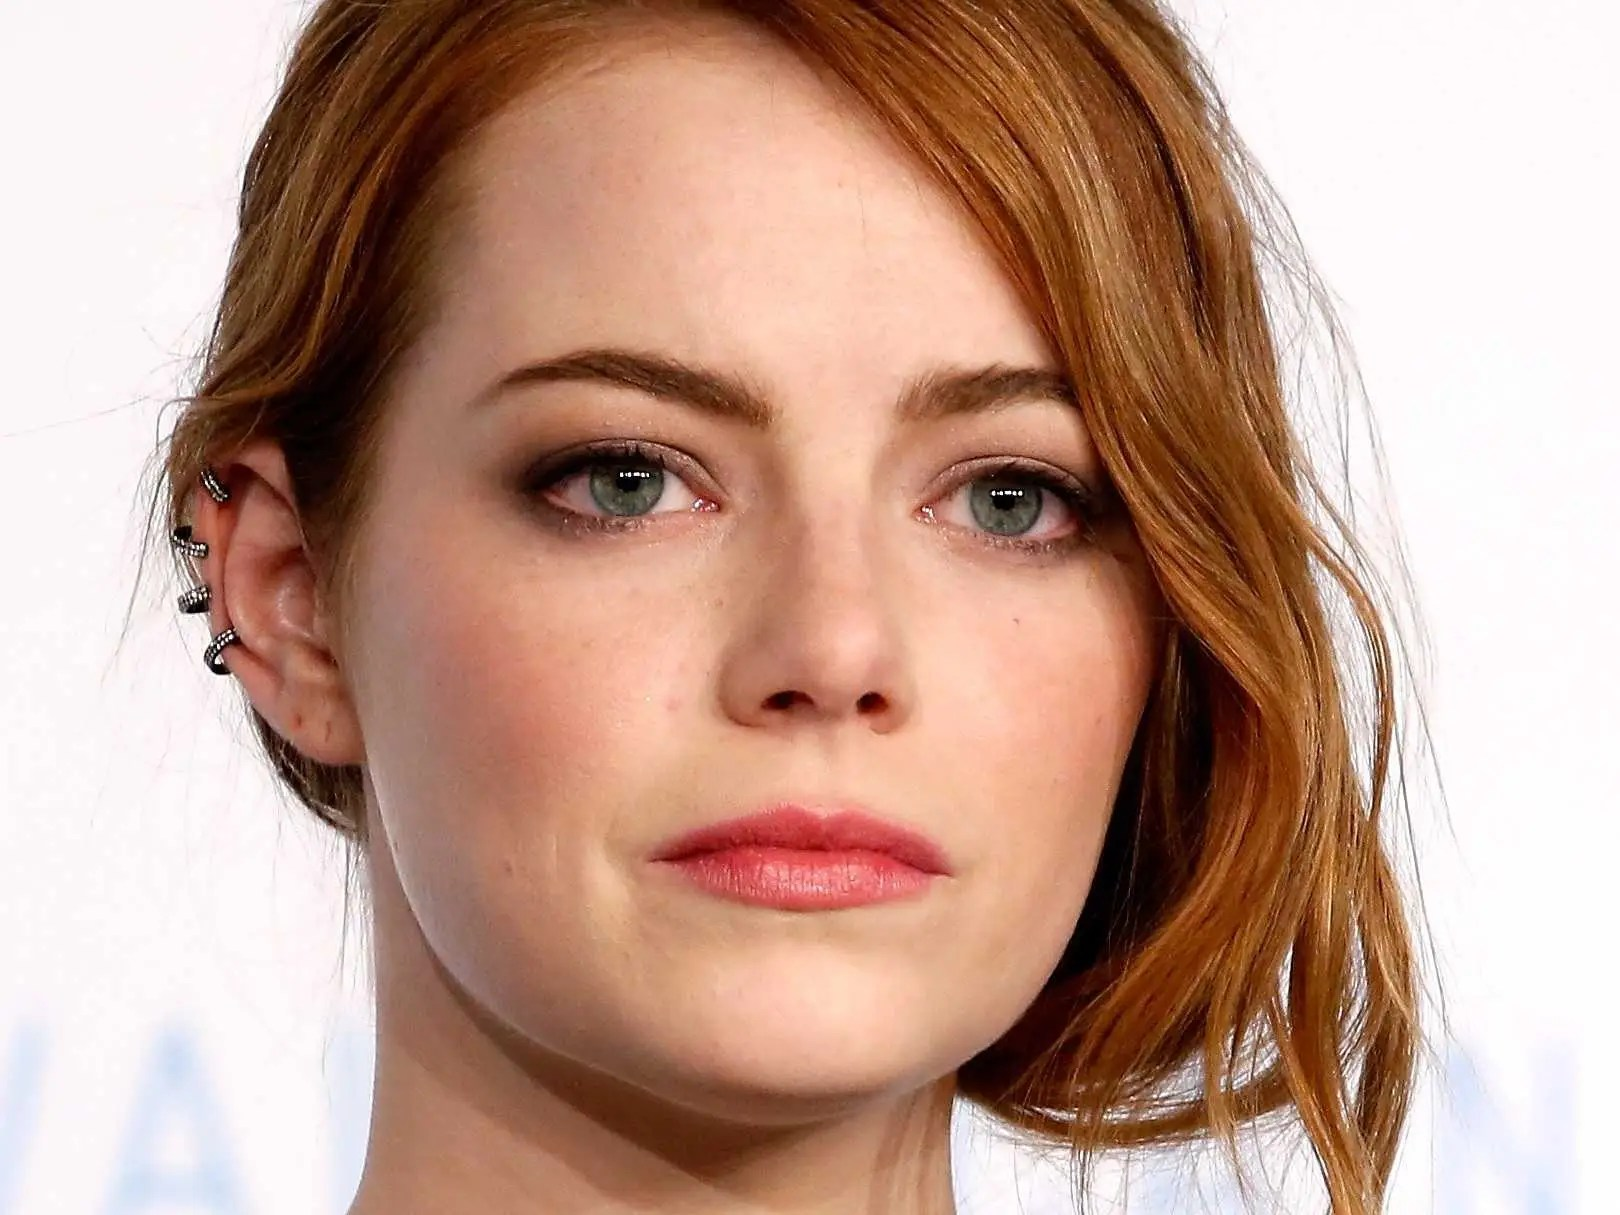 New Sad Boy Girl Wallpapers Emma Stone S Response To Sony Hack Wsj Interview